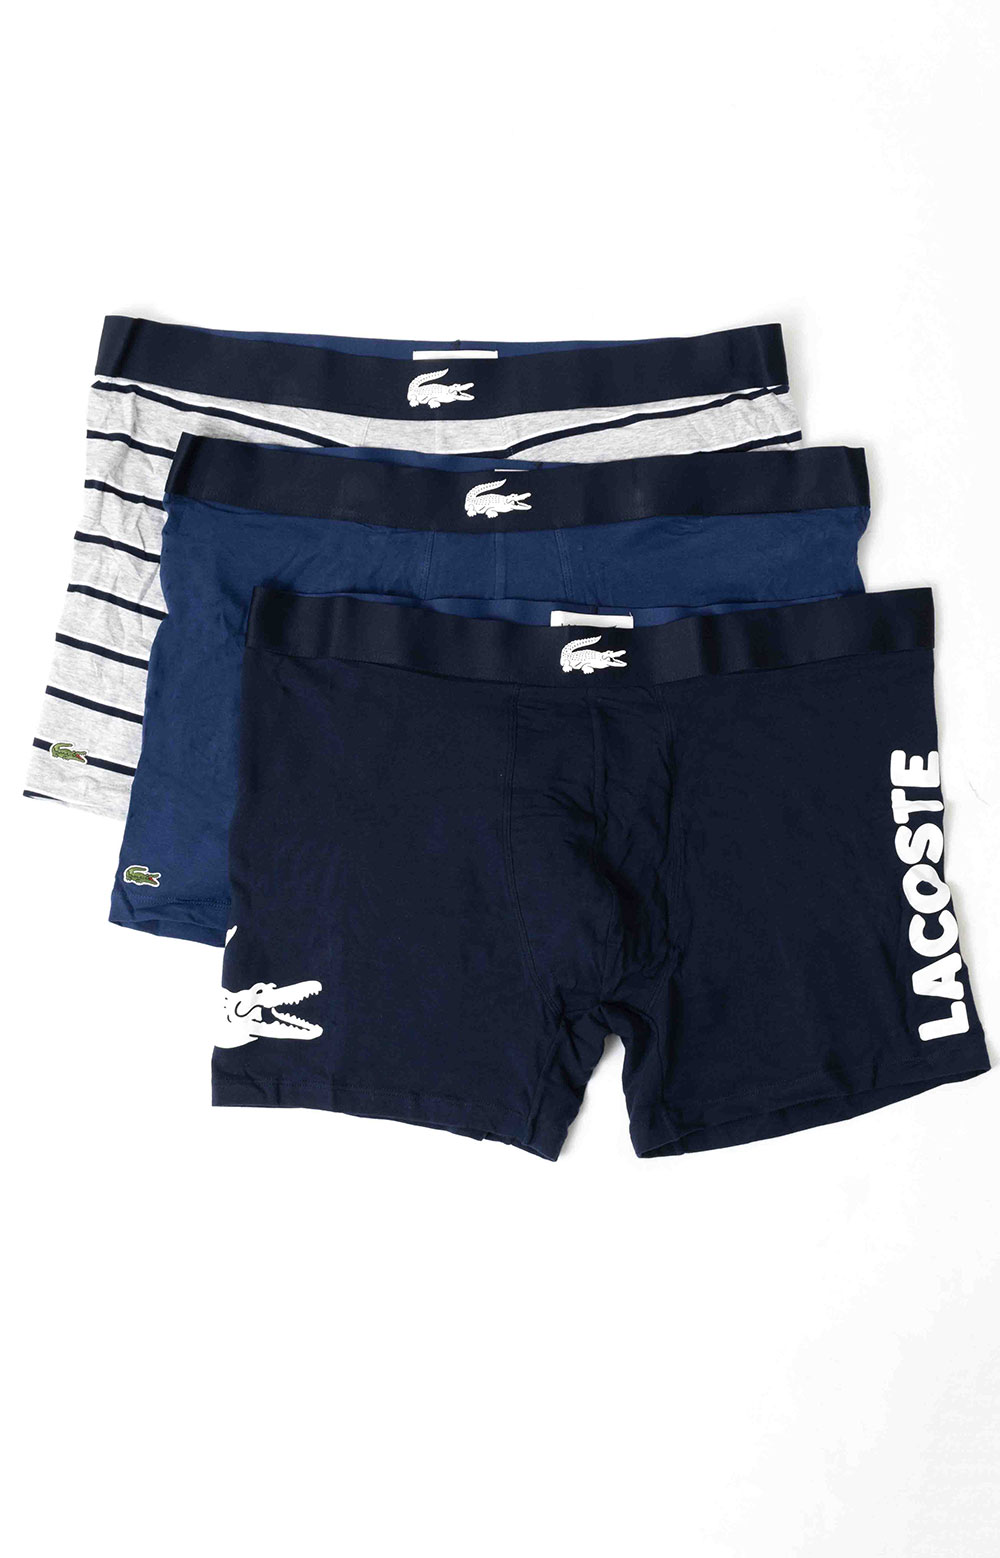 (6H9844-51) Plain and Print Cotton Boxer Brief 3-Pack - Blue/White-Silver Chine